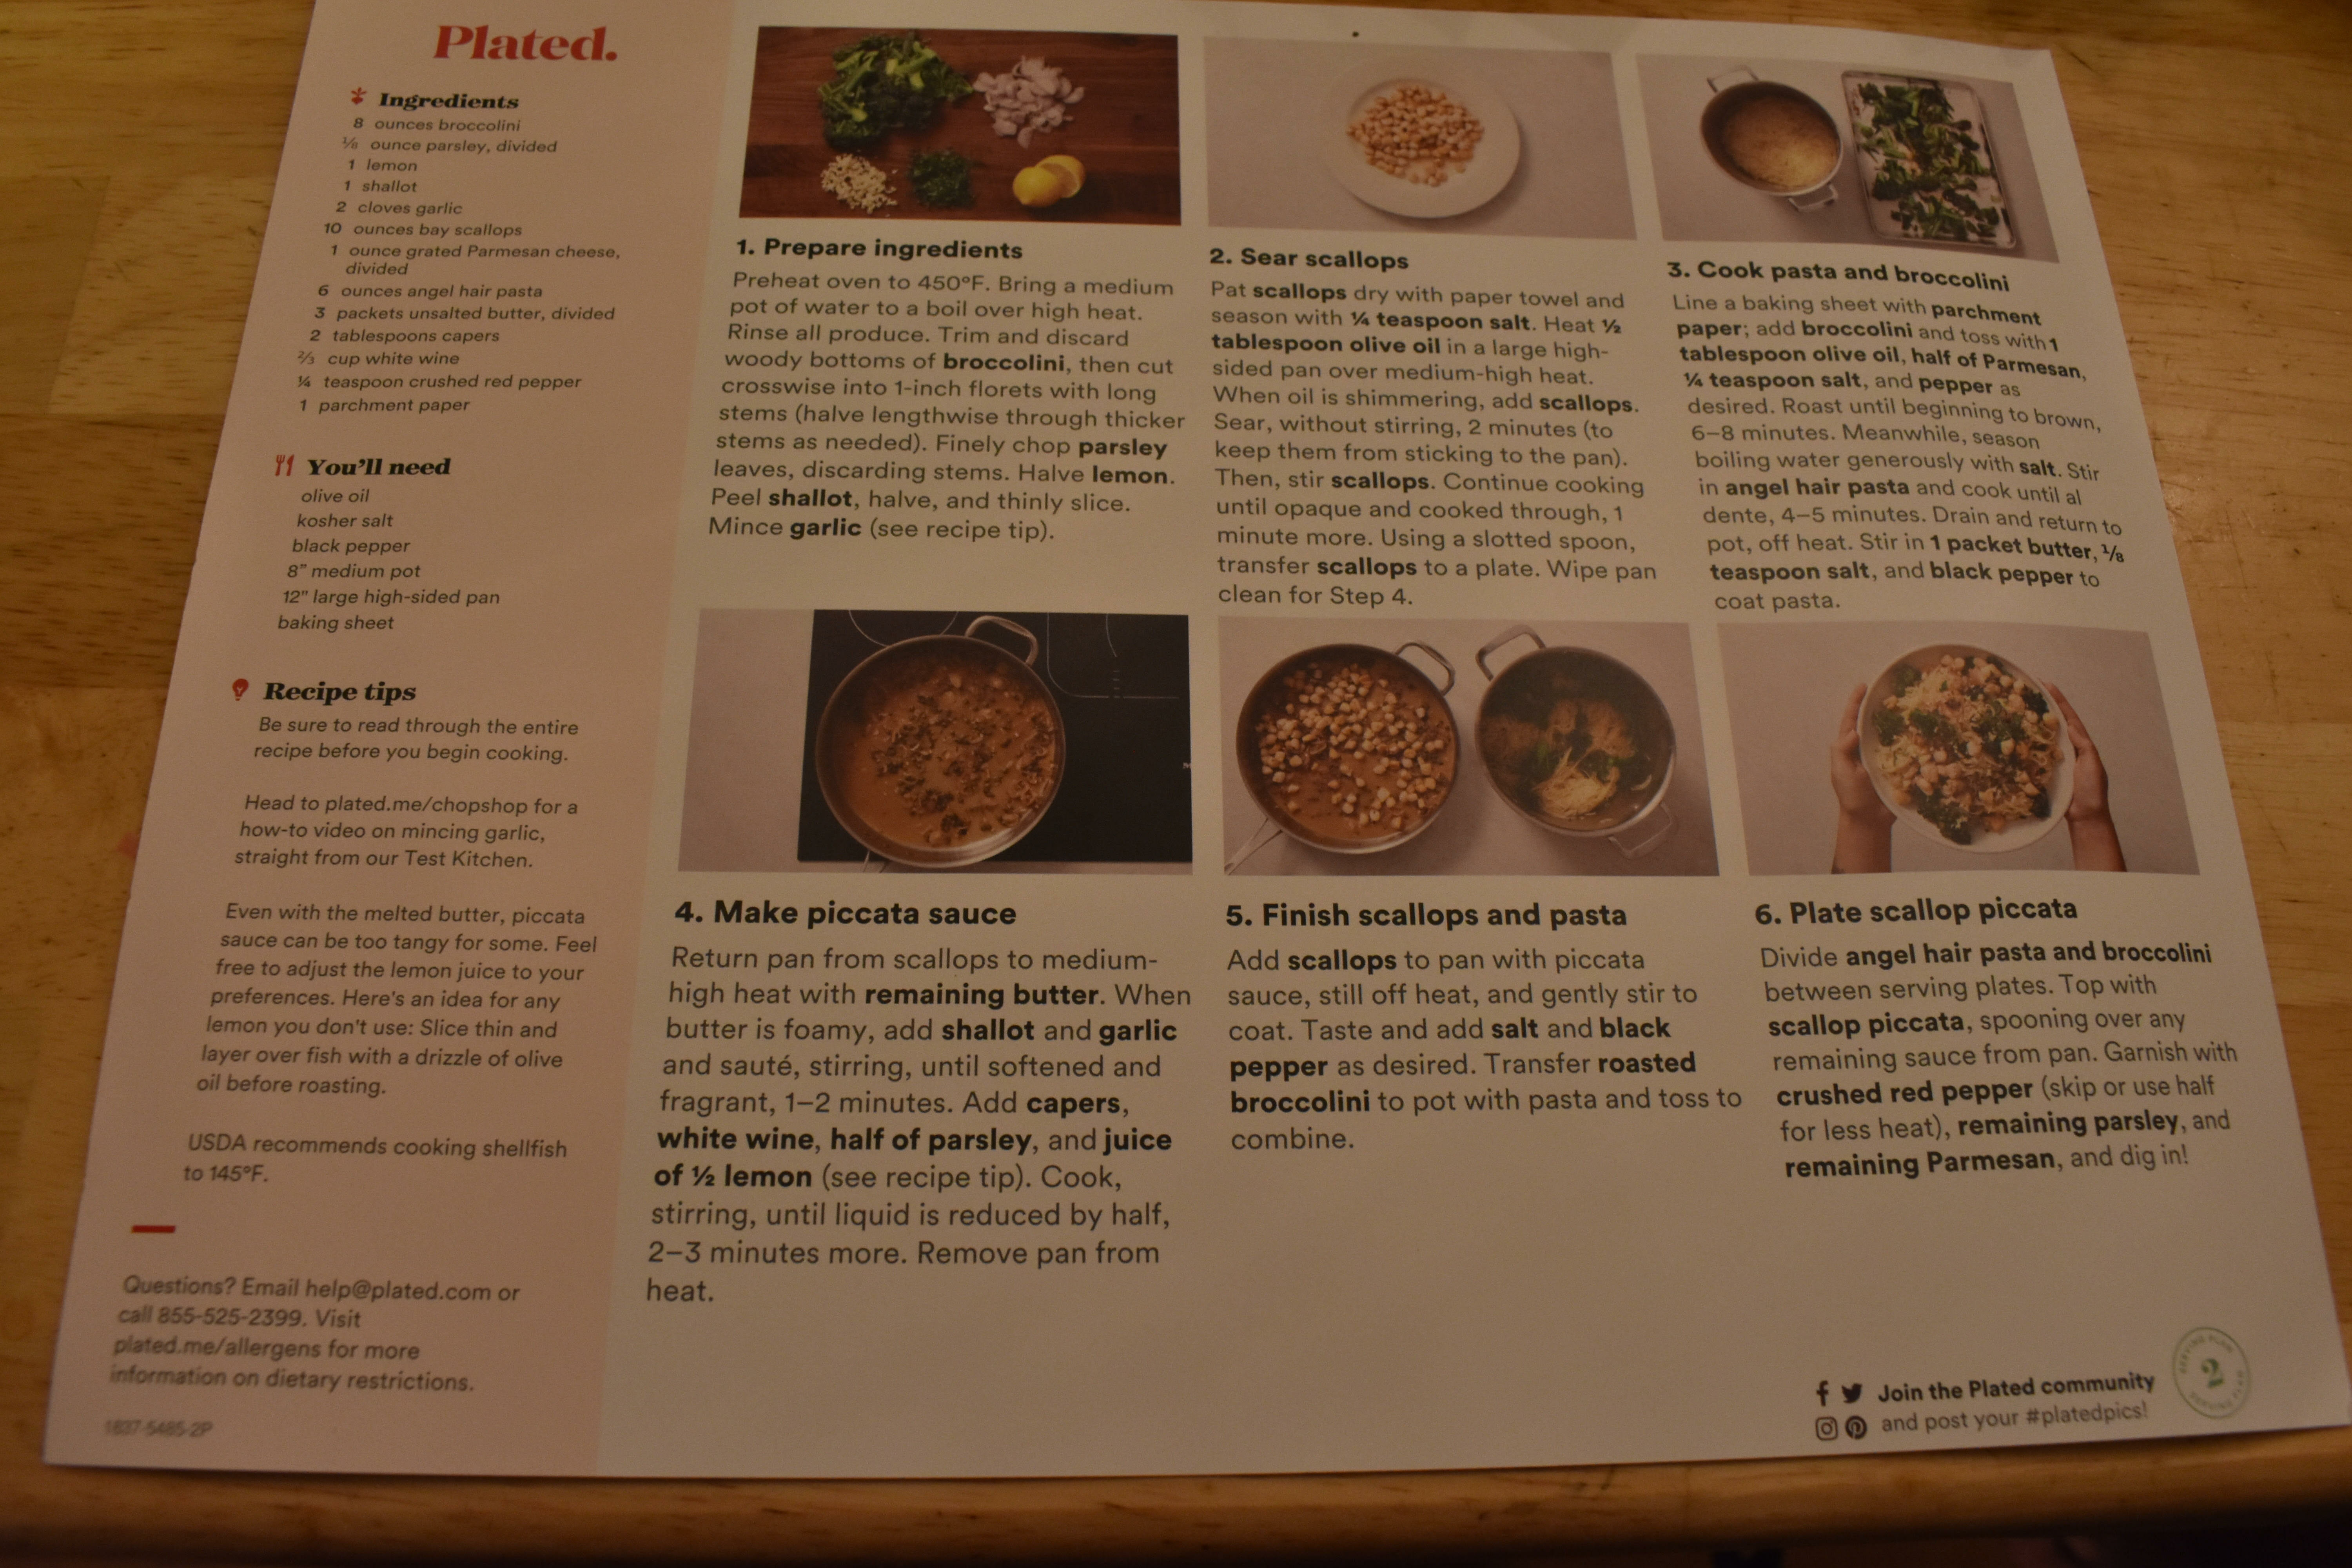 Plated Review - My Experience Using Plated Meal Kit